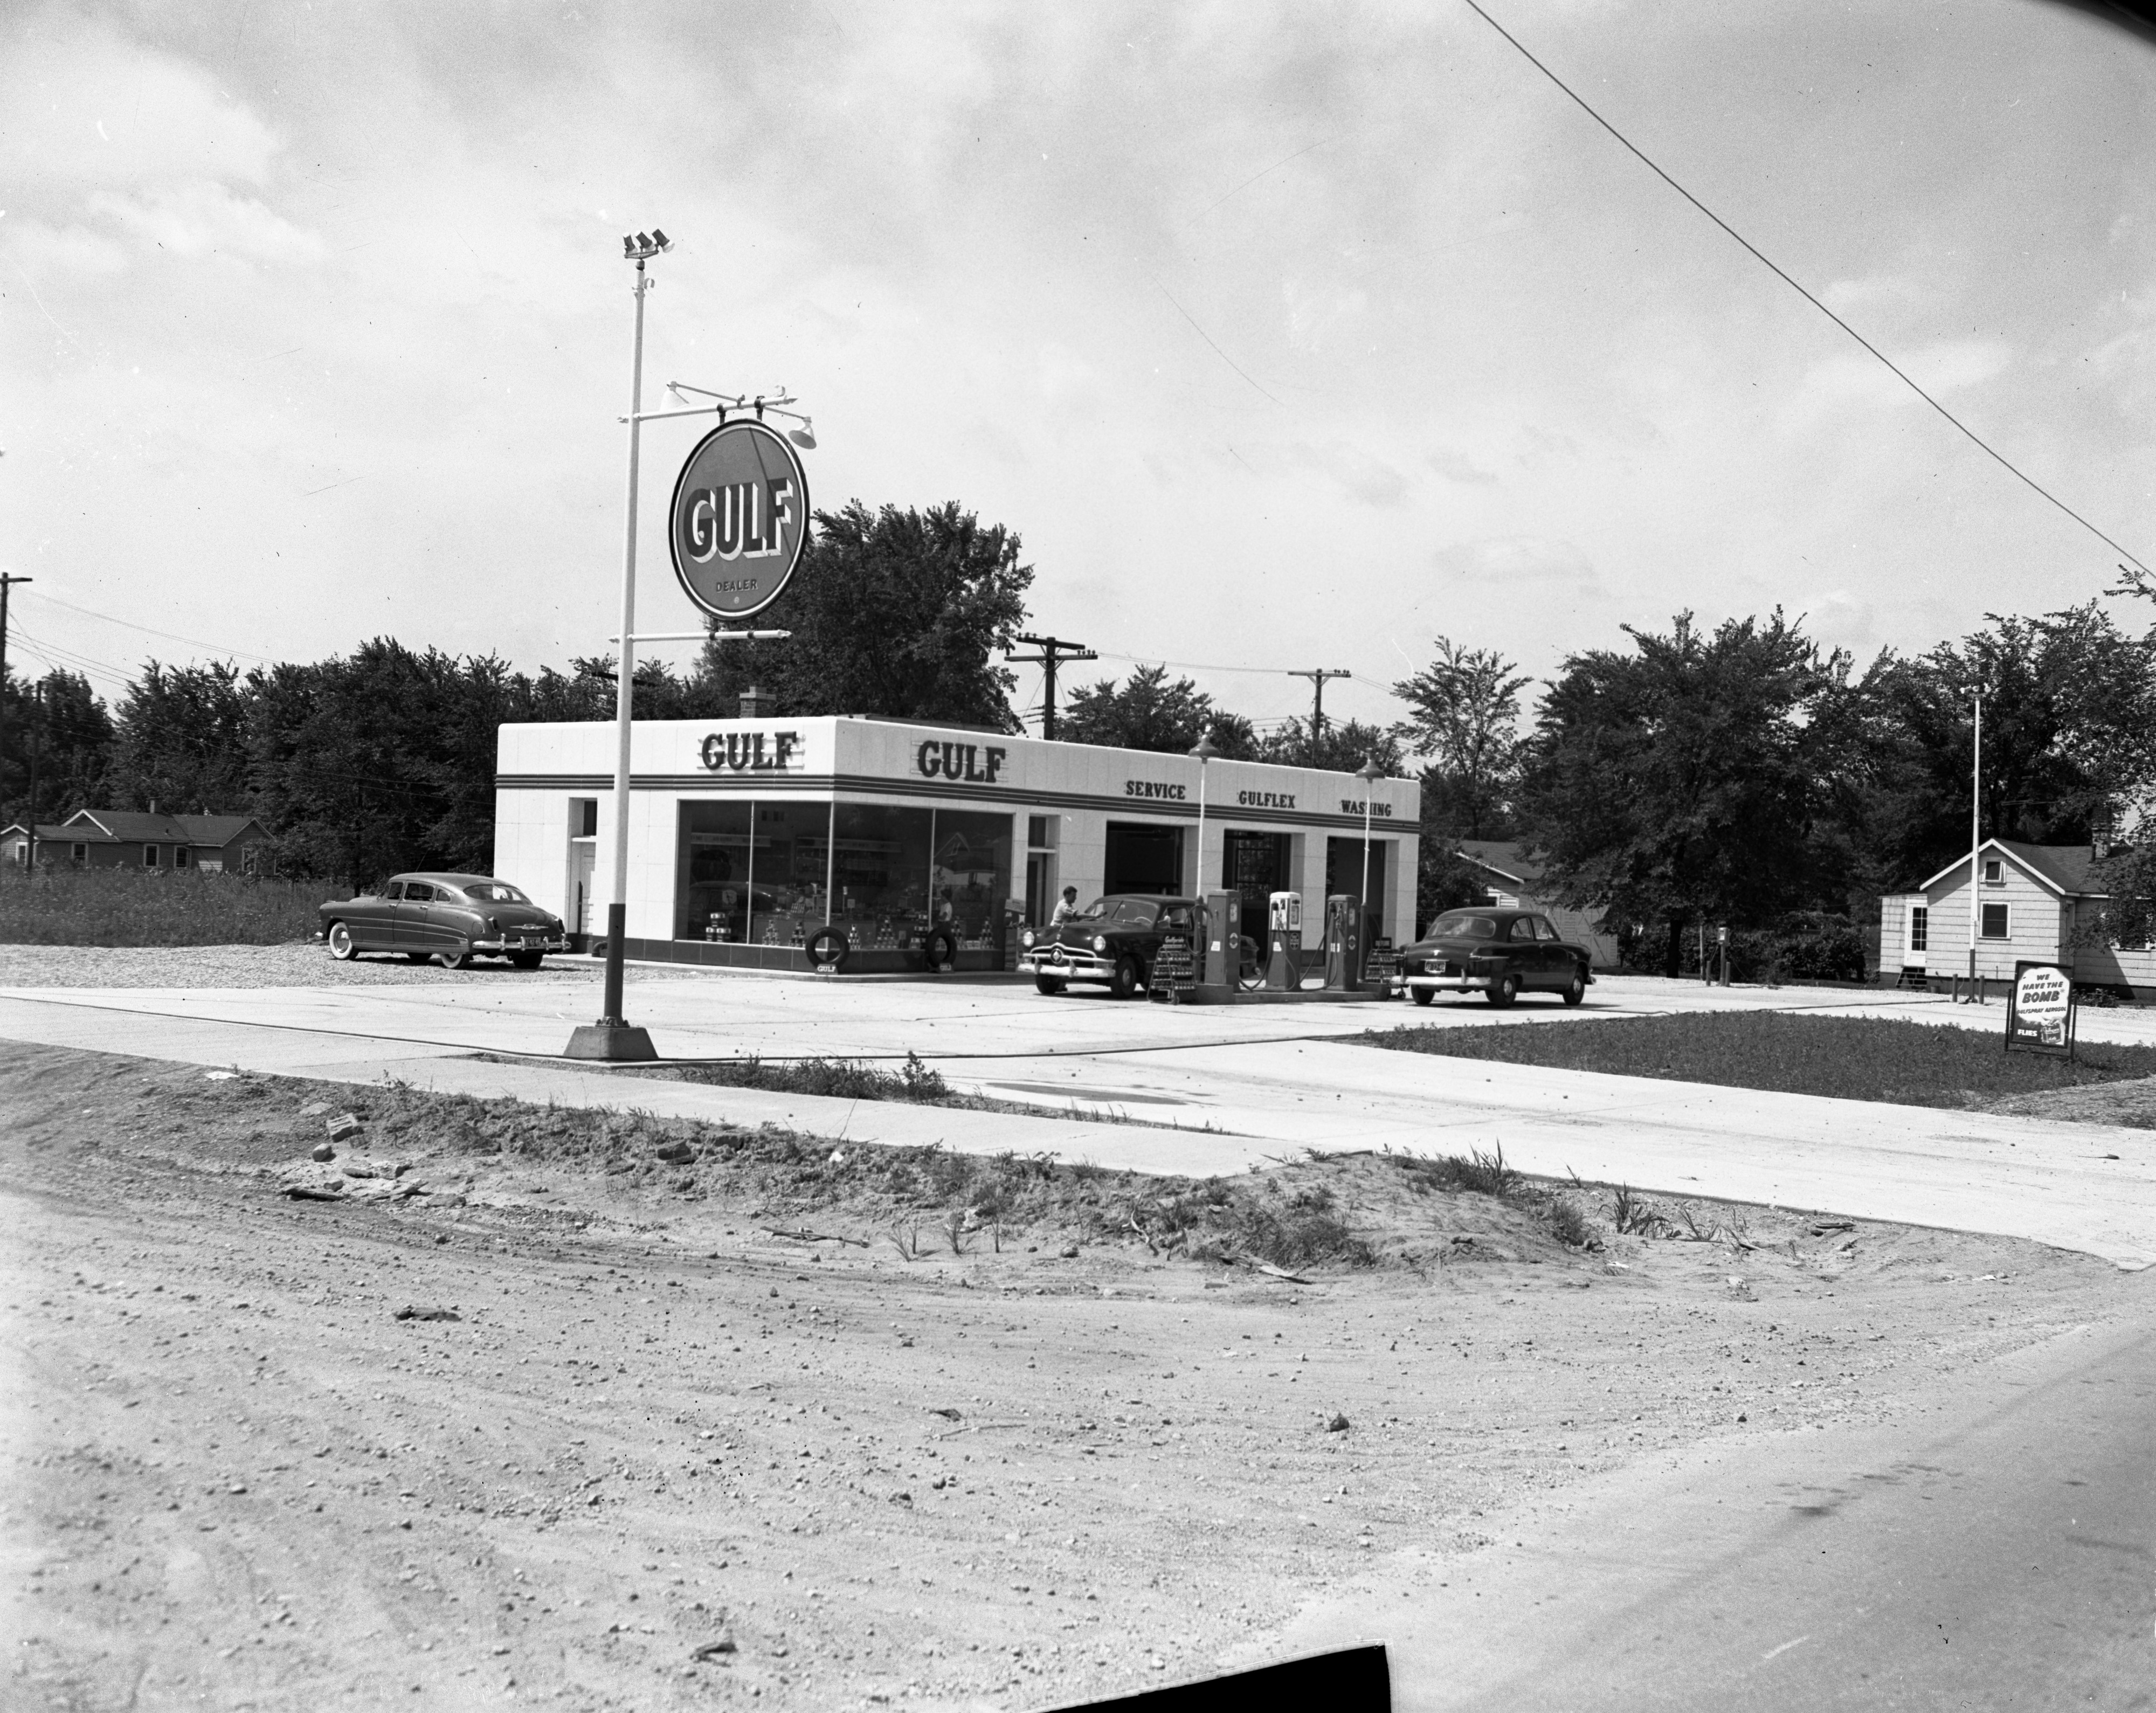 Gulf gas station, August 1951 image